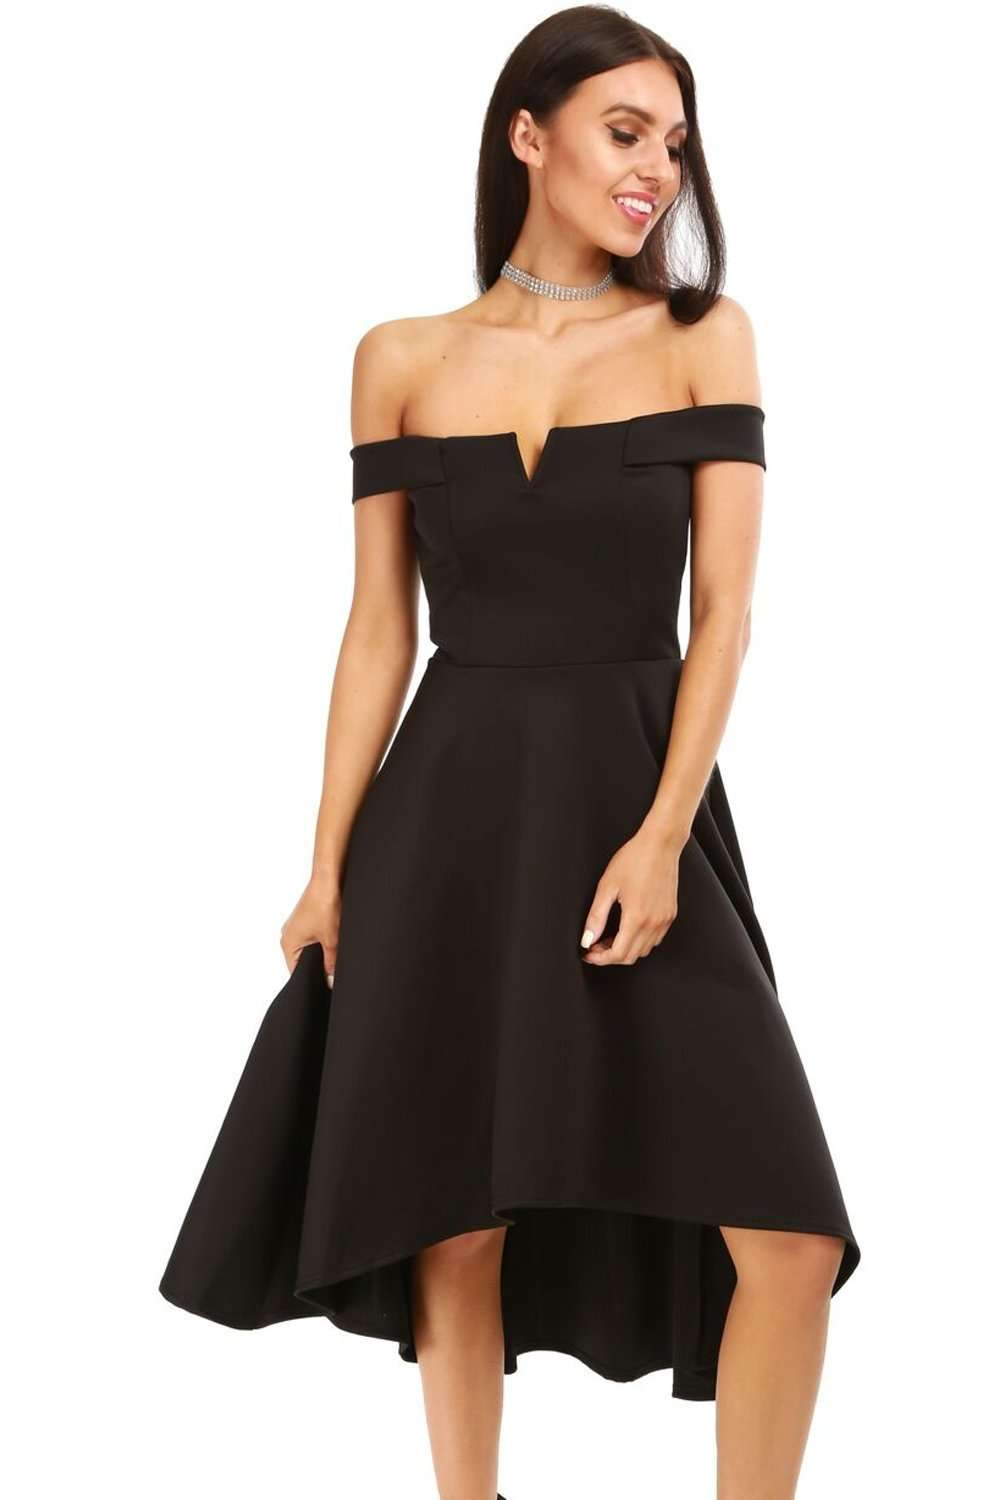 Natalia V Bar Strapless Midi Swing Dress - bejealous-com